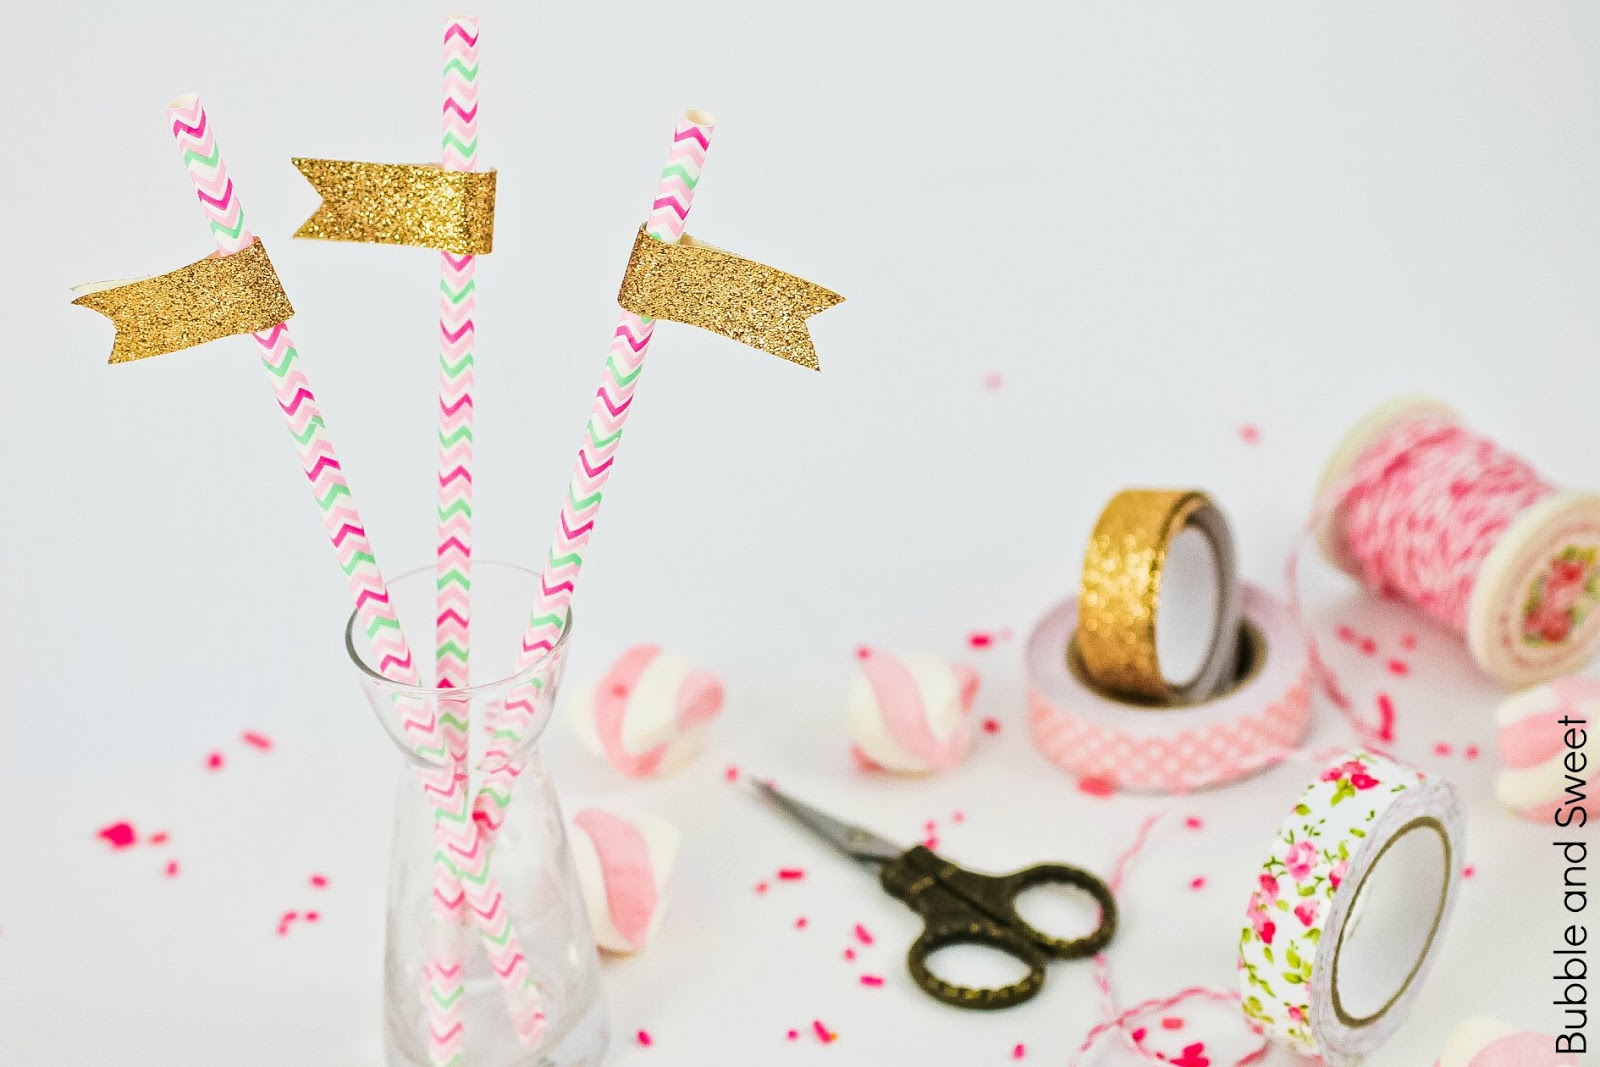 If in doubt add glitter always add glitter or gold pink washi tape decoration ideas budget party straws pretty flags bunting